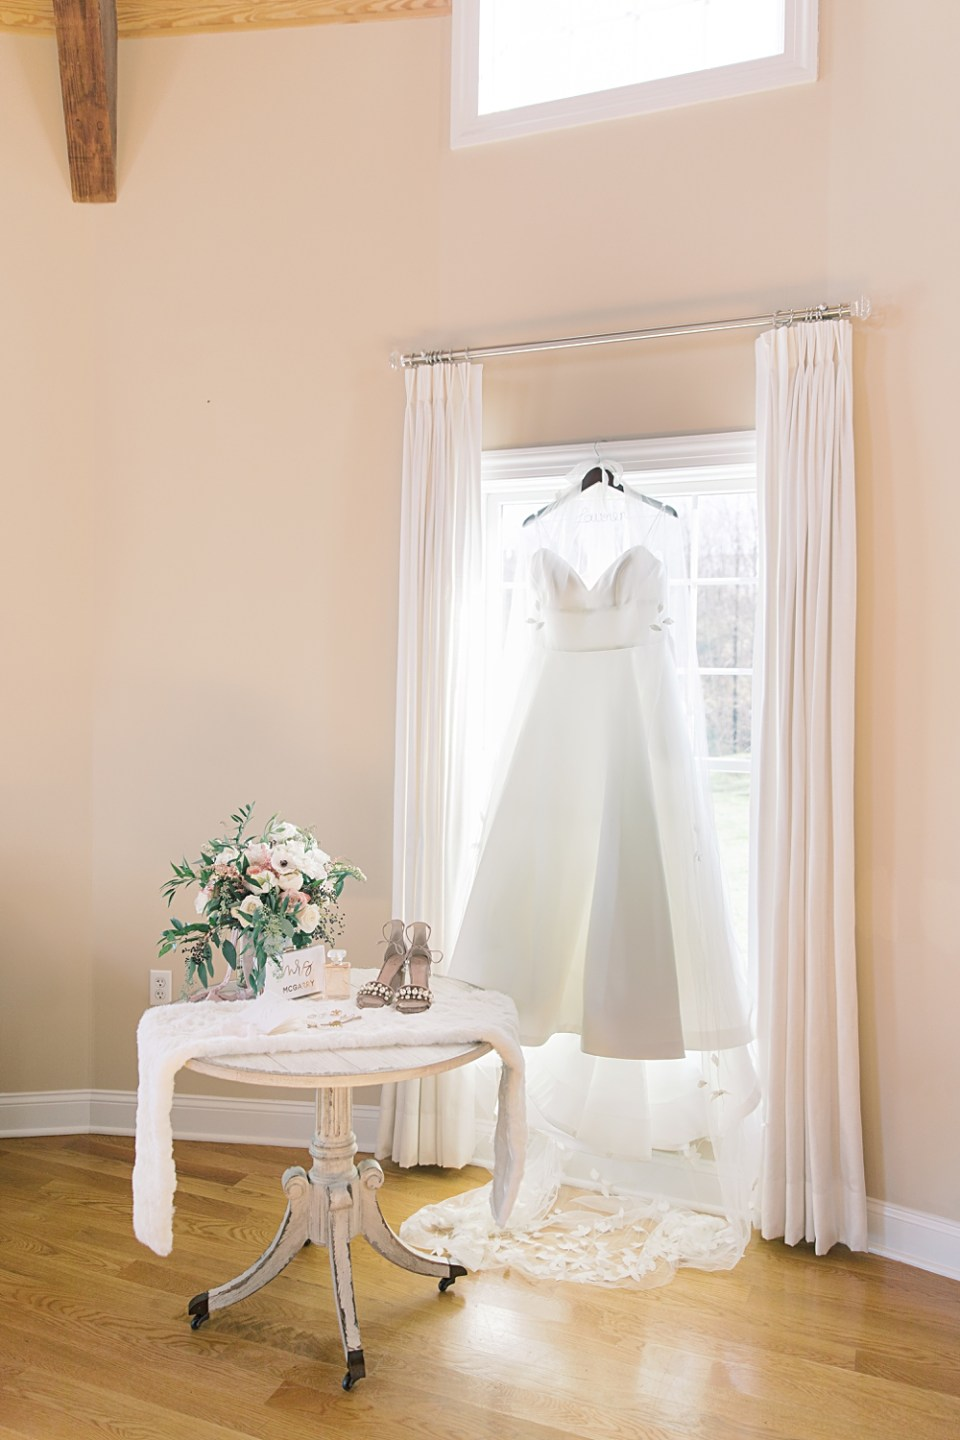 dress hanging in window | bear brook valley bridal suite | sarah canning photography